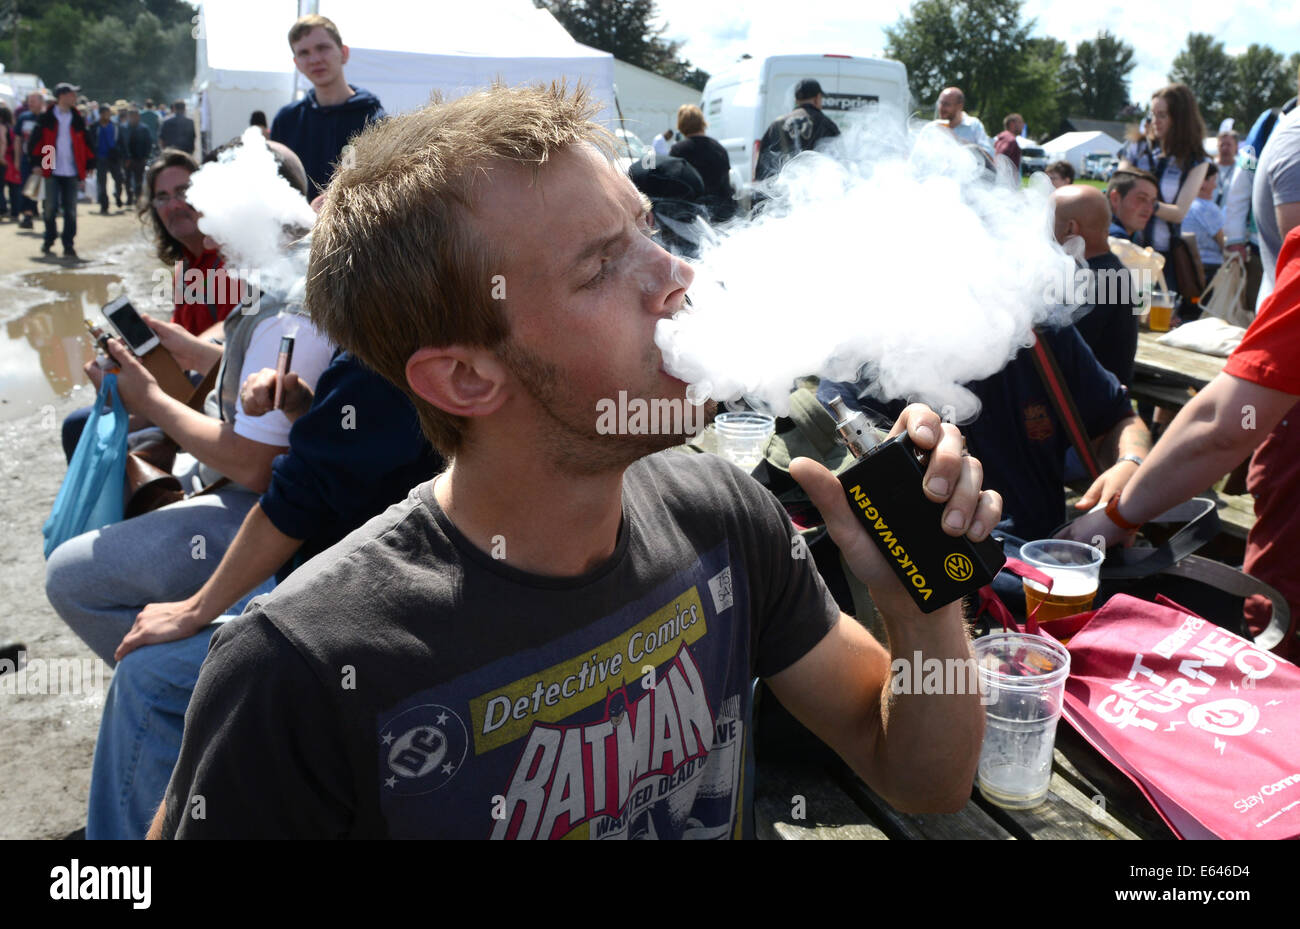 Man exhaling vapour from Volkswagen e cigarette at Vapefest 2014 - Stock Image